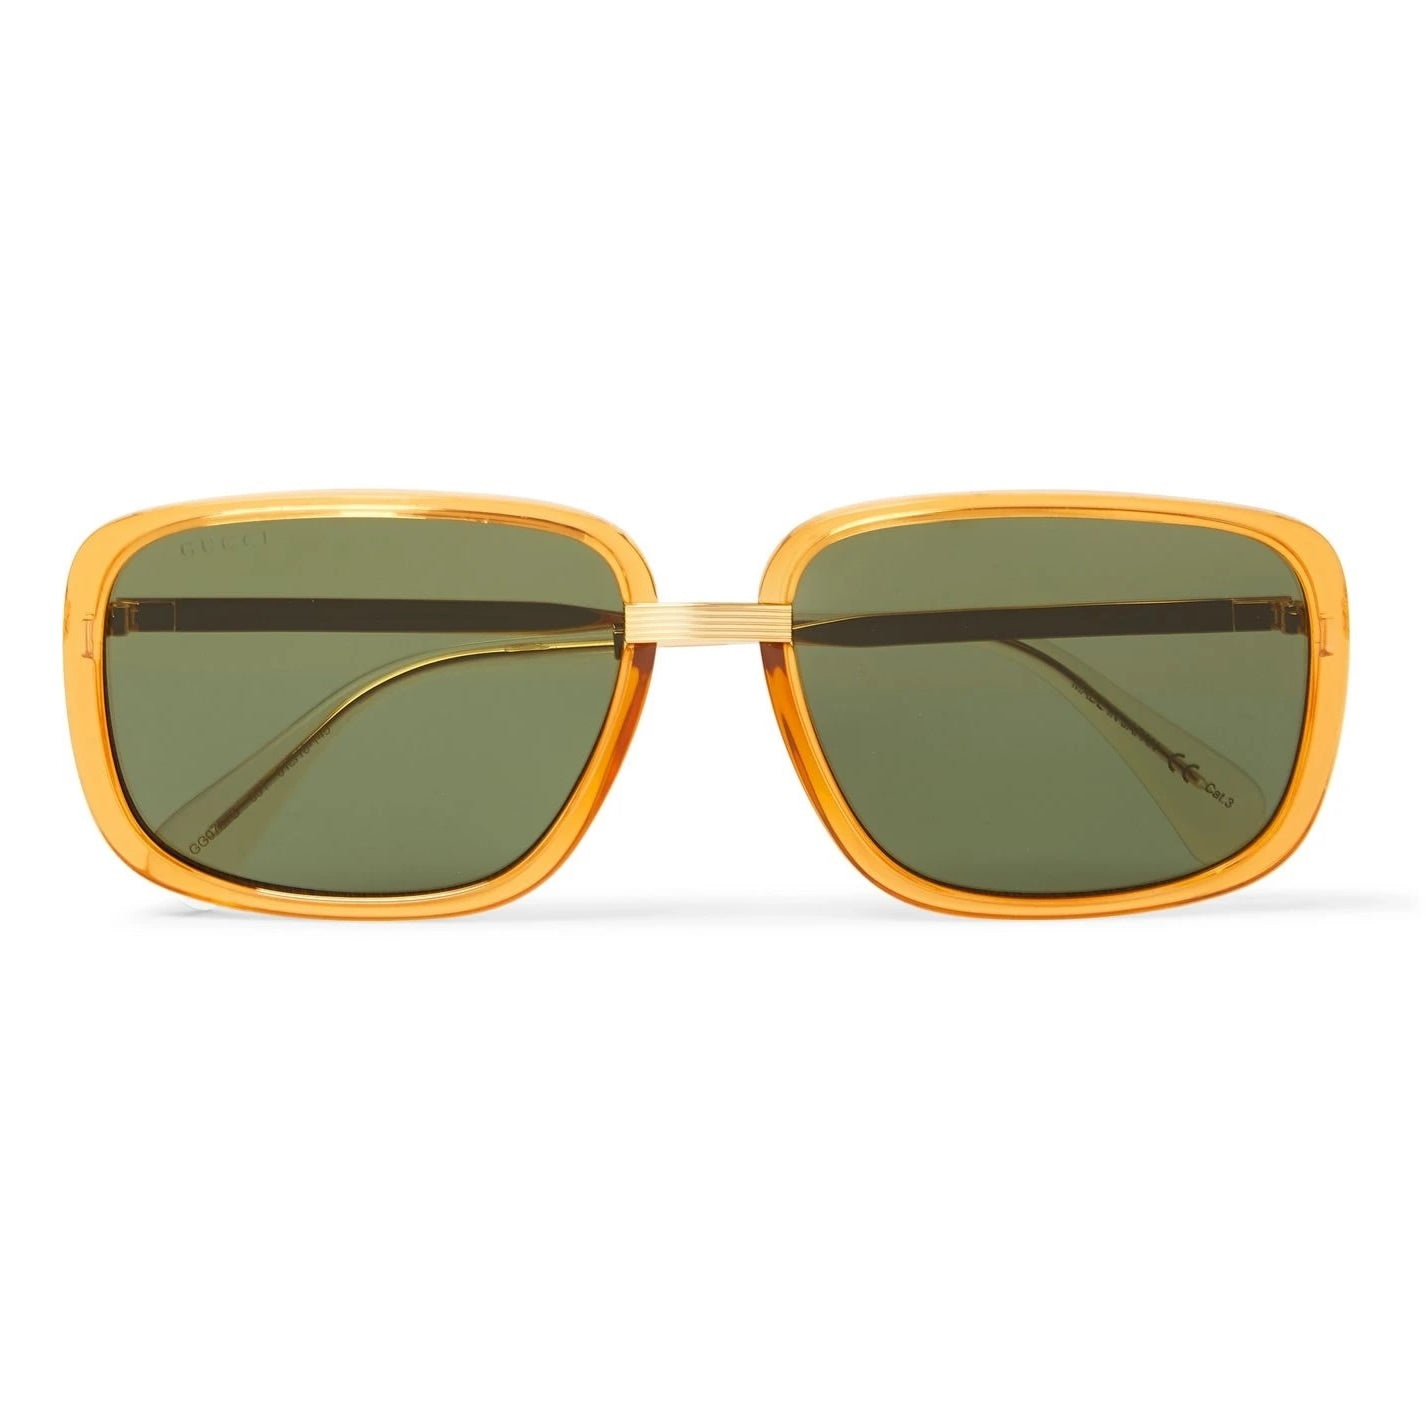 Gucci - Square-Frame Acetate Sunglasses - Gold-Tone